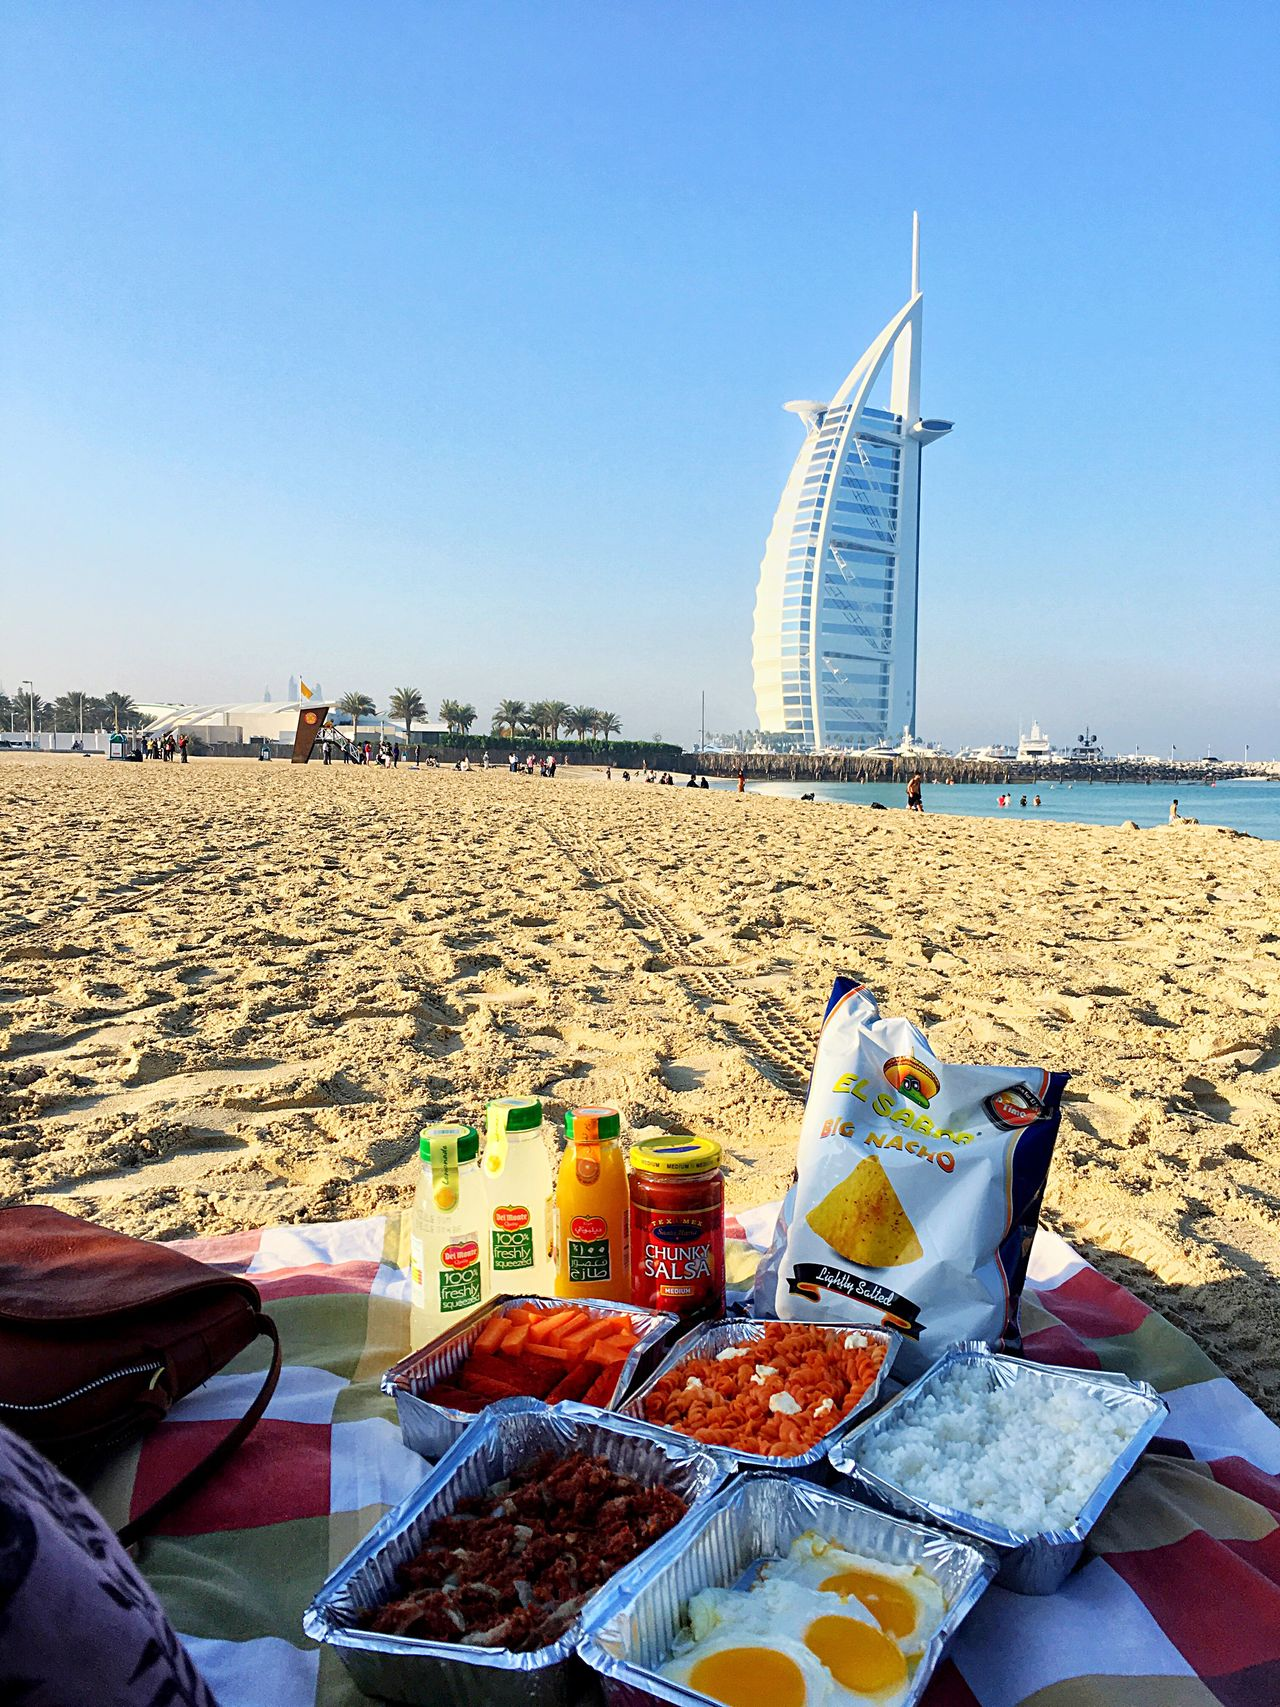 Picnic time.😍☀️ Clear Sky Water Picnic Picnic Time ♡ Outdoors Beauty In Nature Beach Enjoying Life Enjoying The Sun Enjoying The View City Travel Destinations Sky Sunlight Sea Built Structure Cityscape Nature Vacations Day